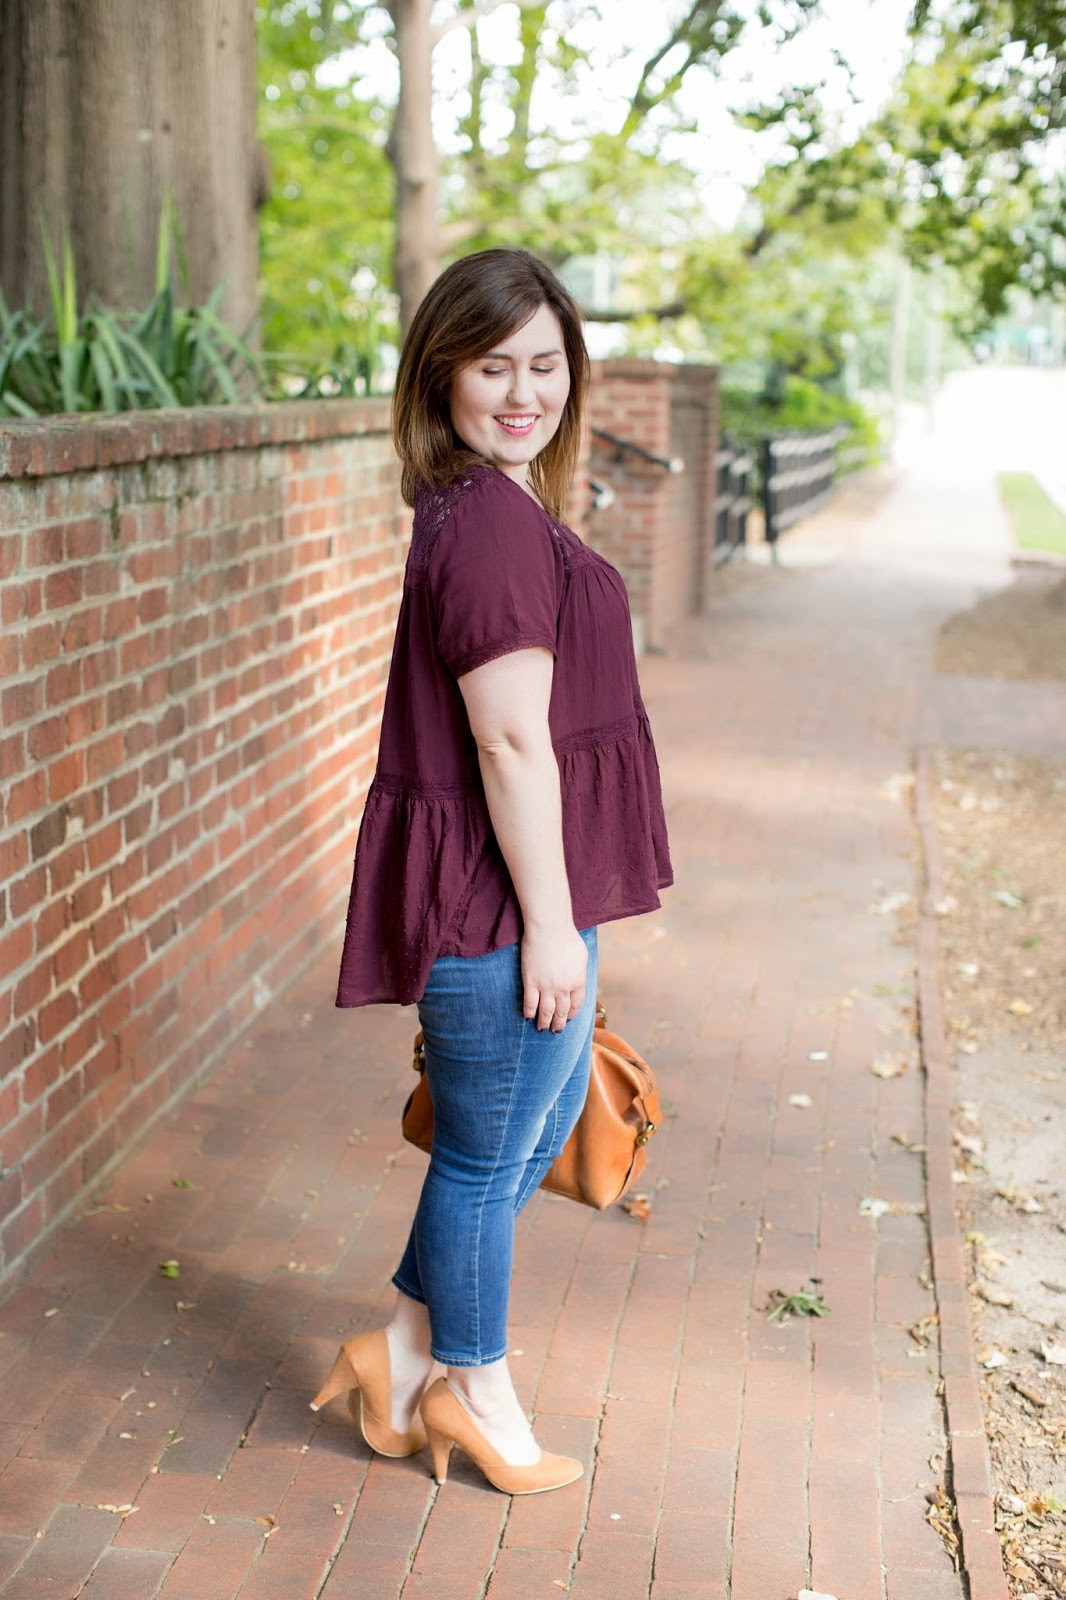 Rebecca Lately Fall Fashion Maroon Top Rockstar Jeans Cognac Heels Madewell Kensington